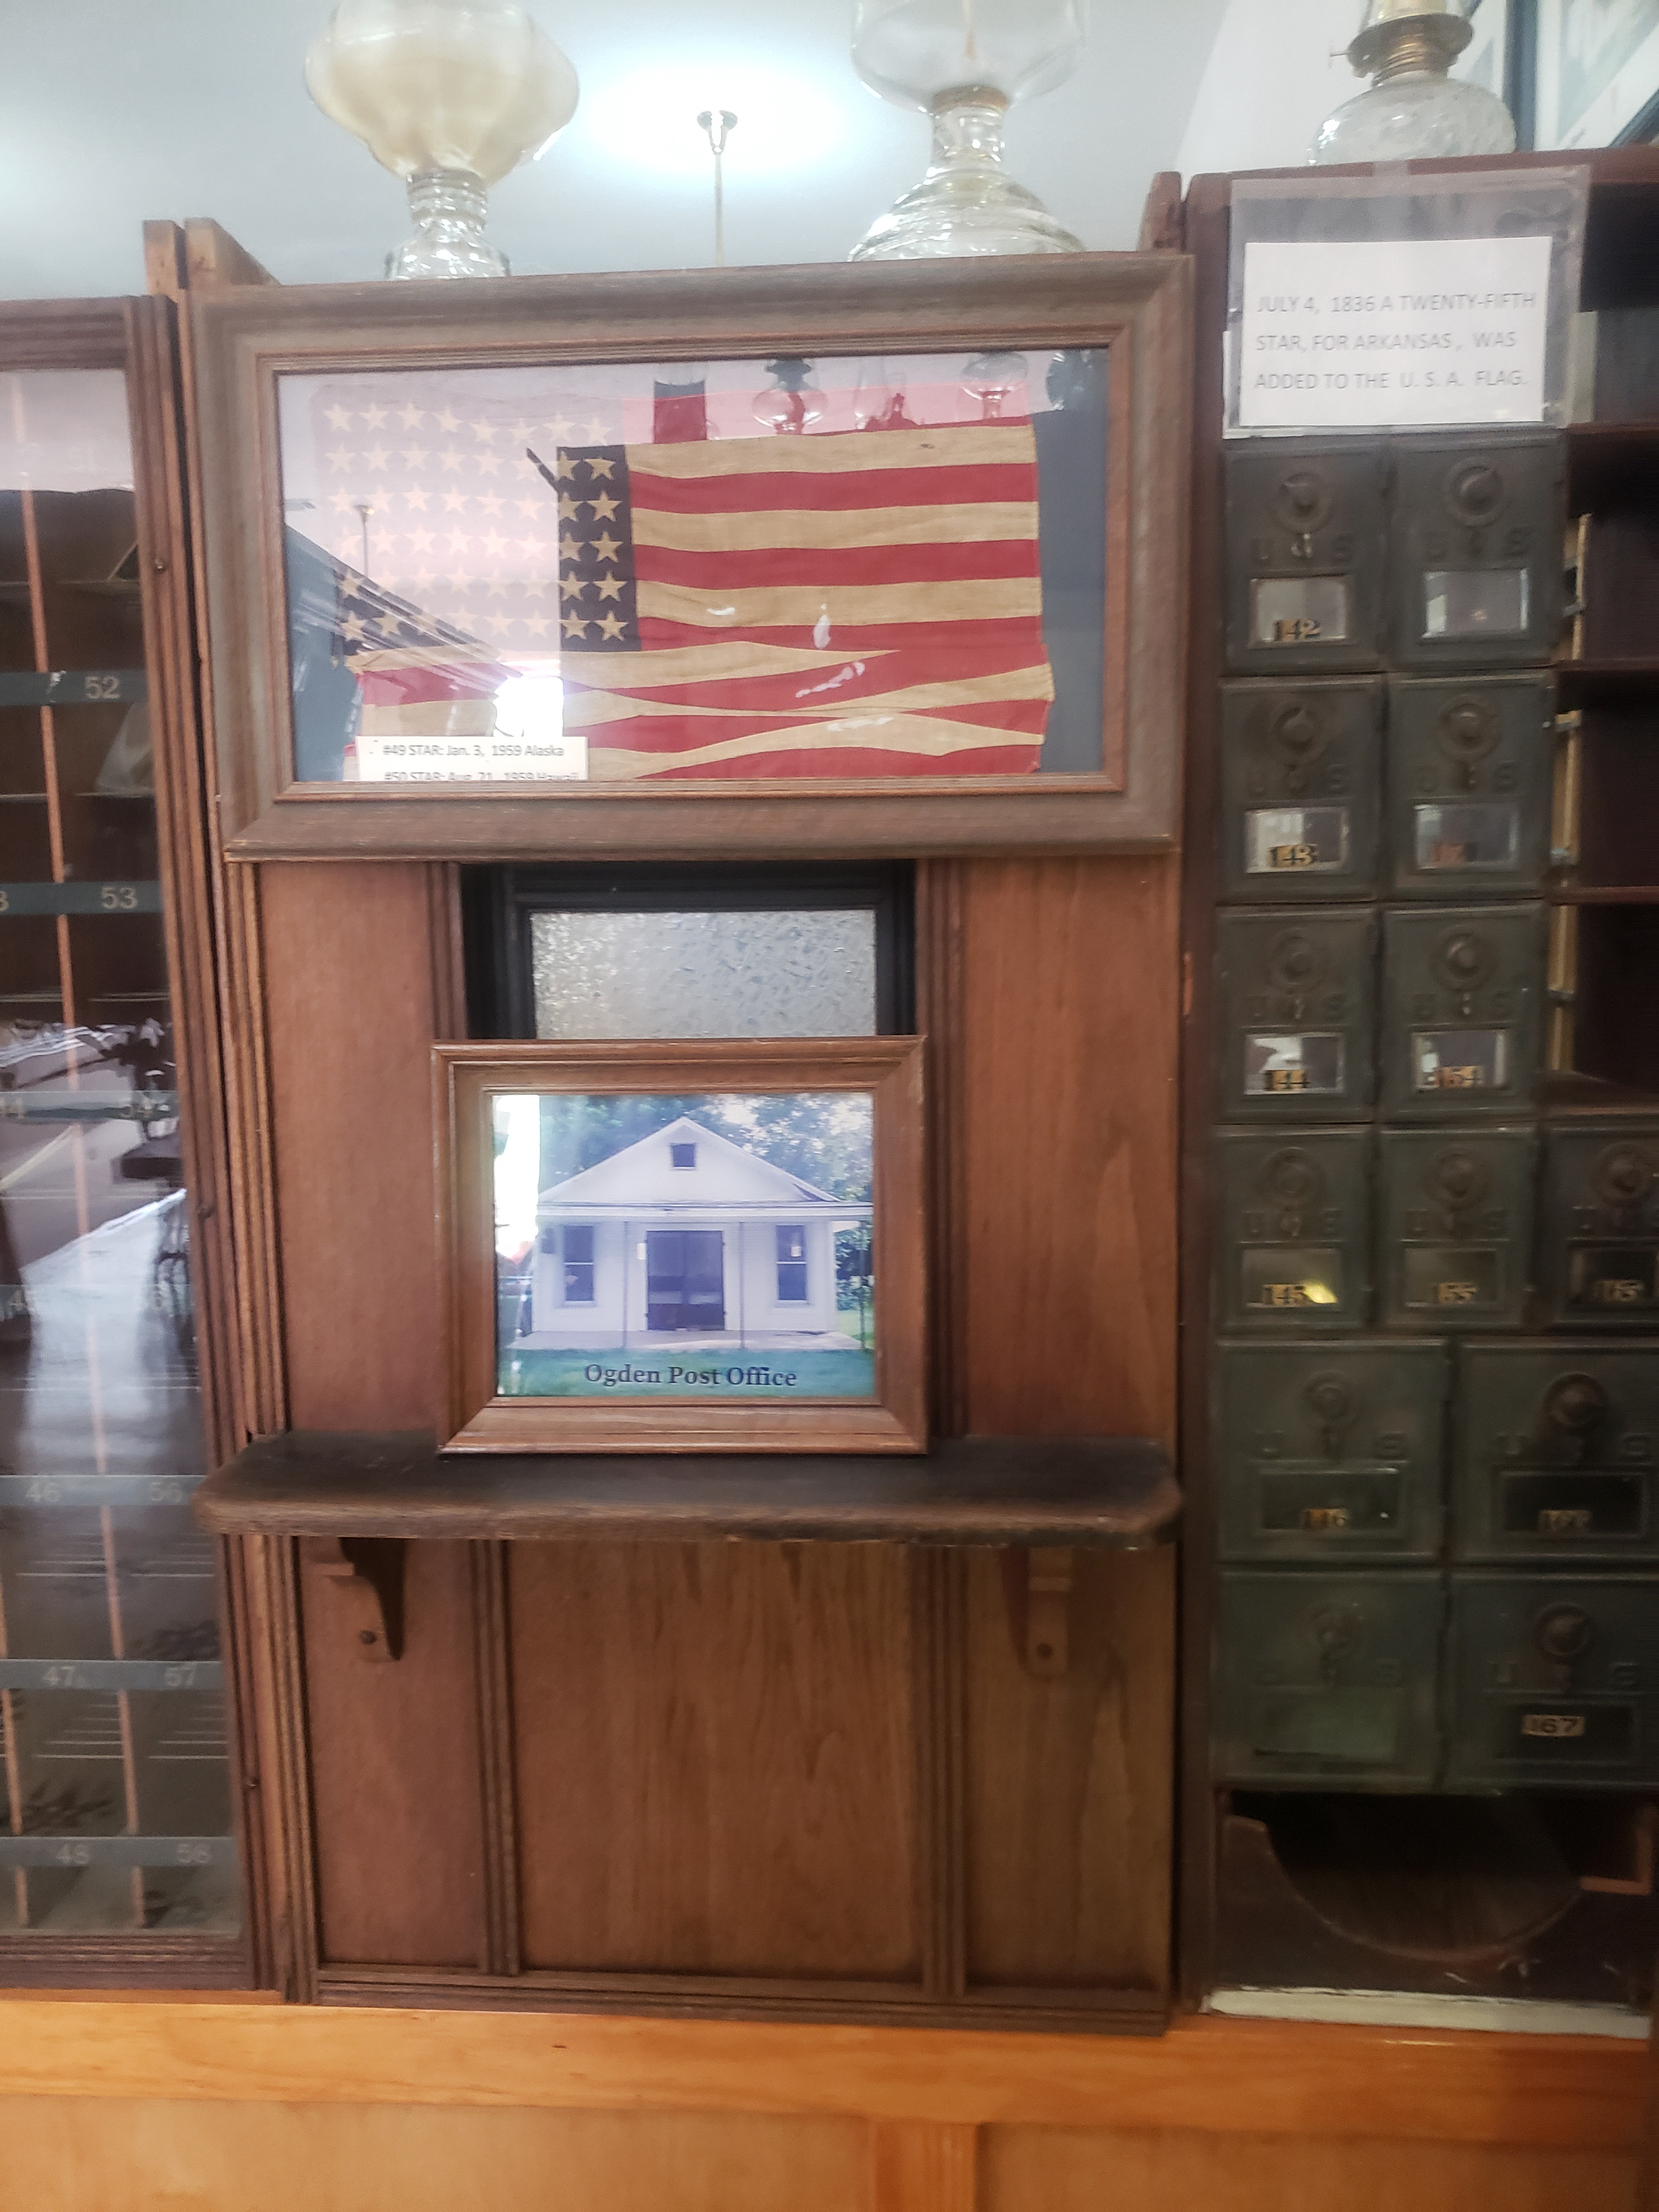 Mailboxes and Ogden Post Office